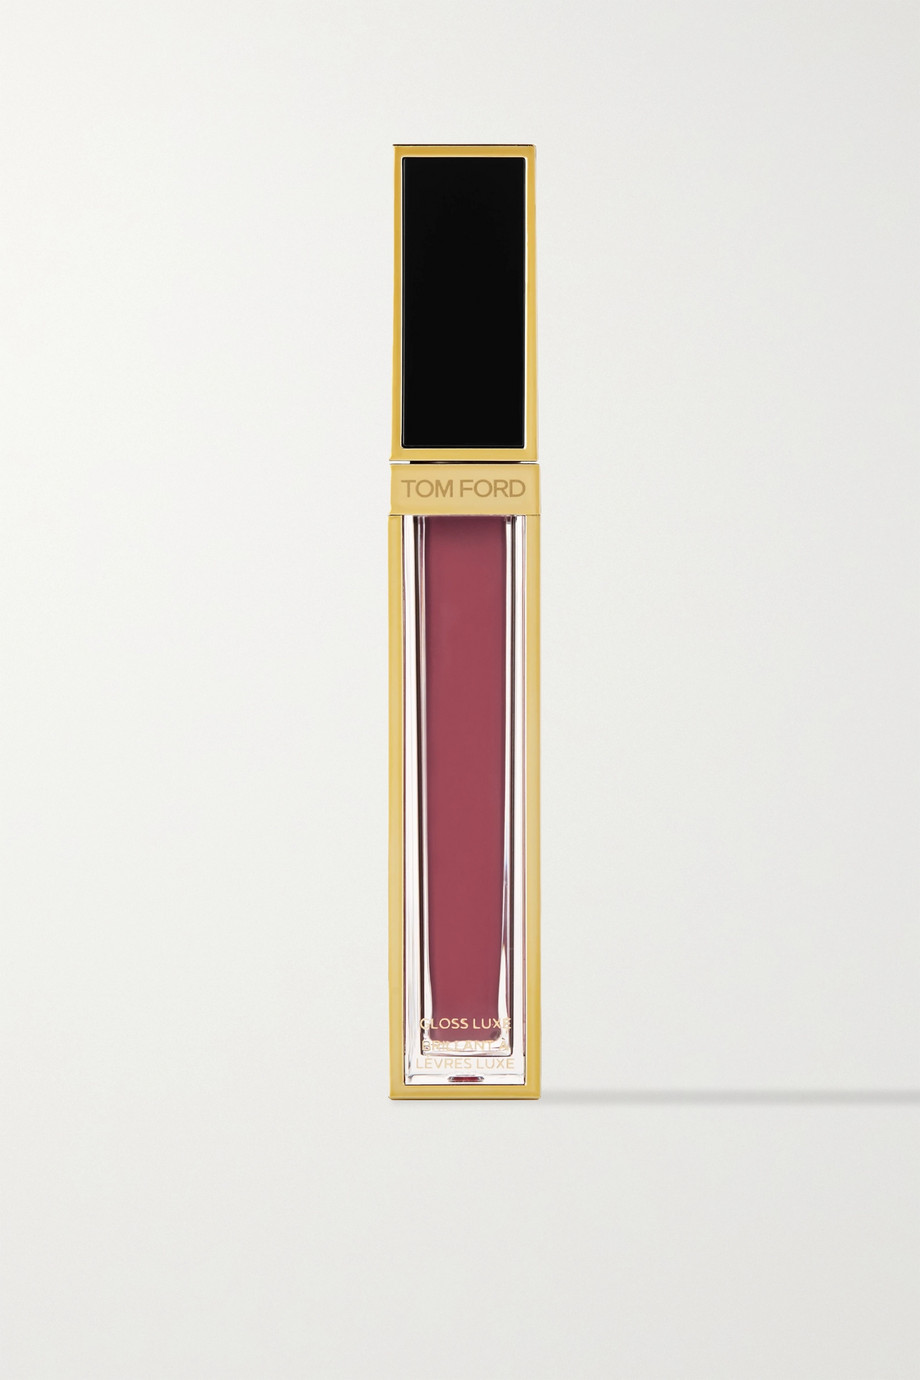 TOM FORD BEAUTY Gloss Luxe - Gratuitous 11